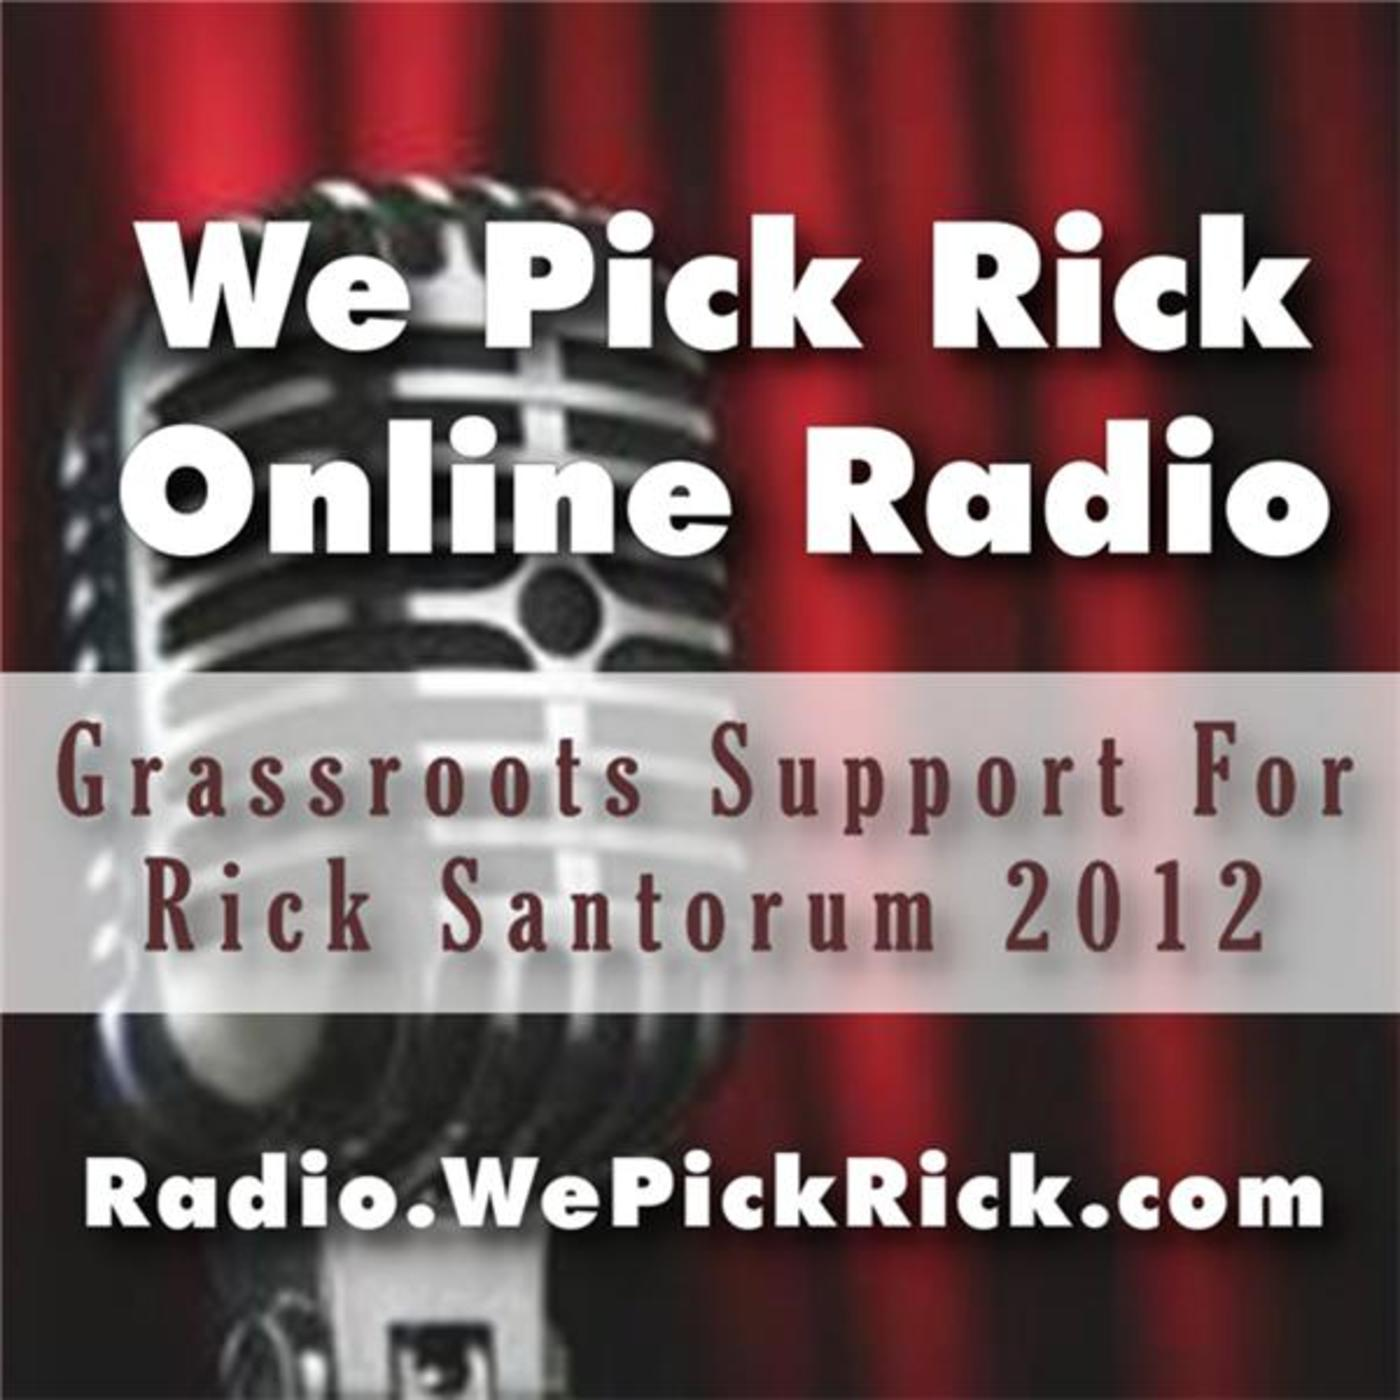 We Pick Rick - Rick Santorum 2012